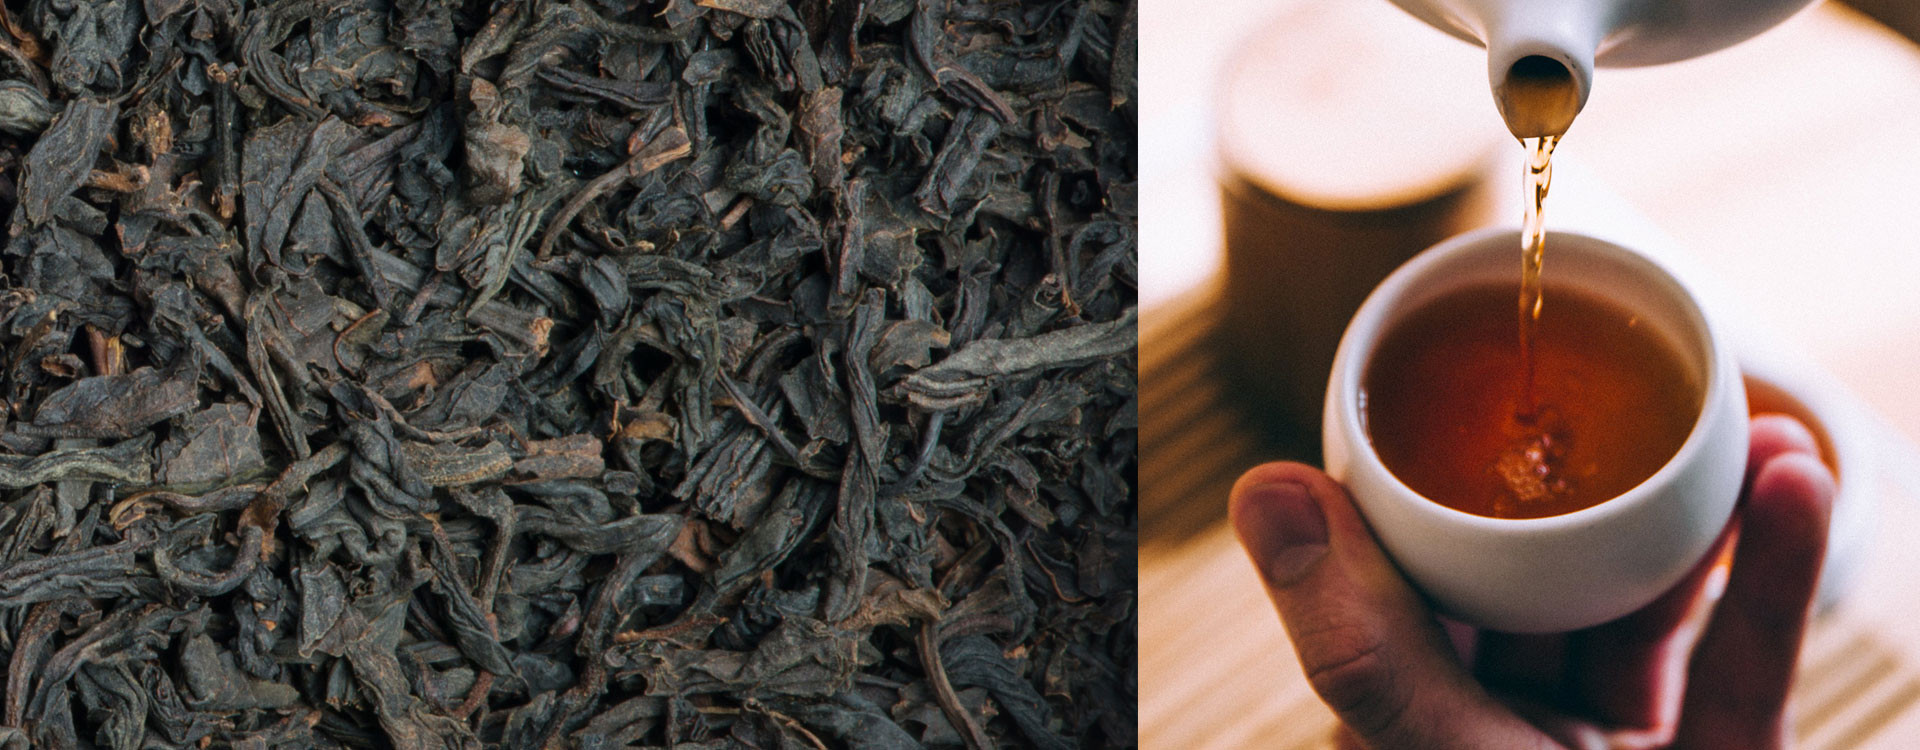 9 questions about Lapsang Souchong and smoked teas in general